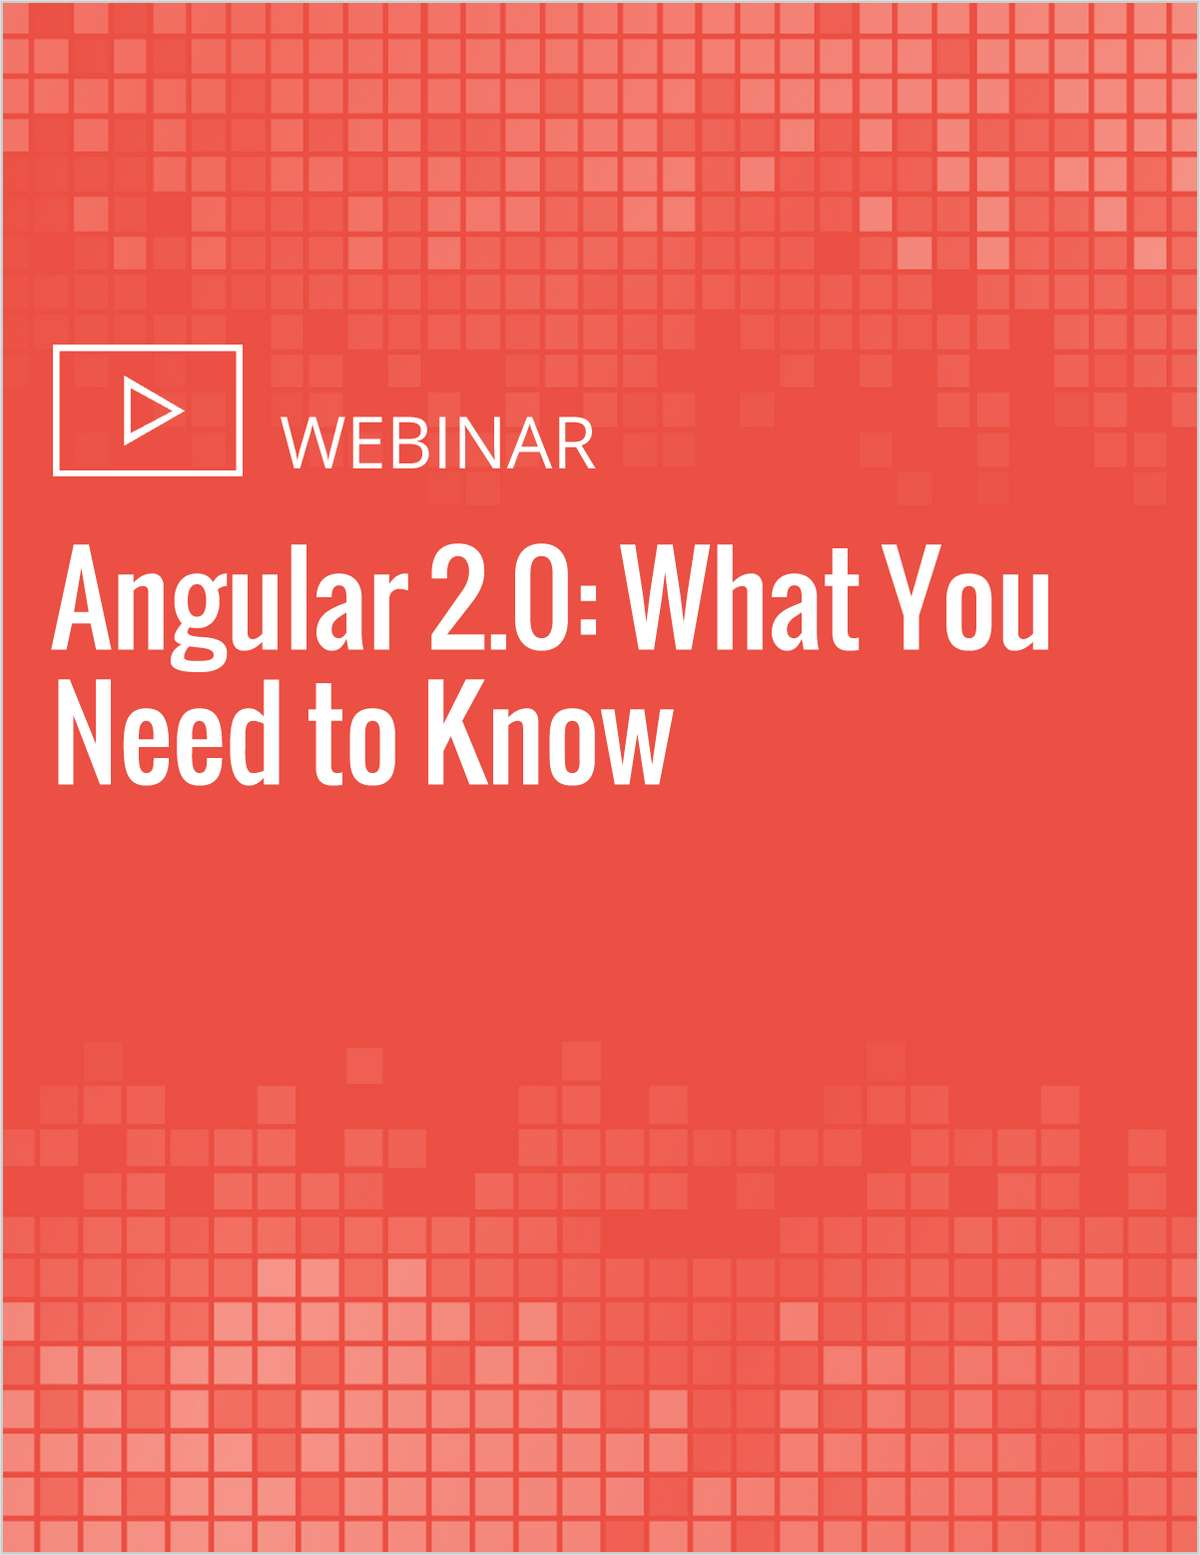 Angular 2.0: What You Need to Know